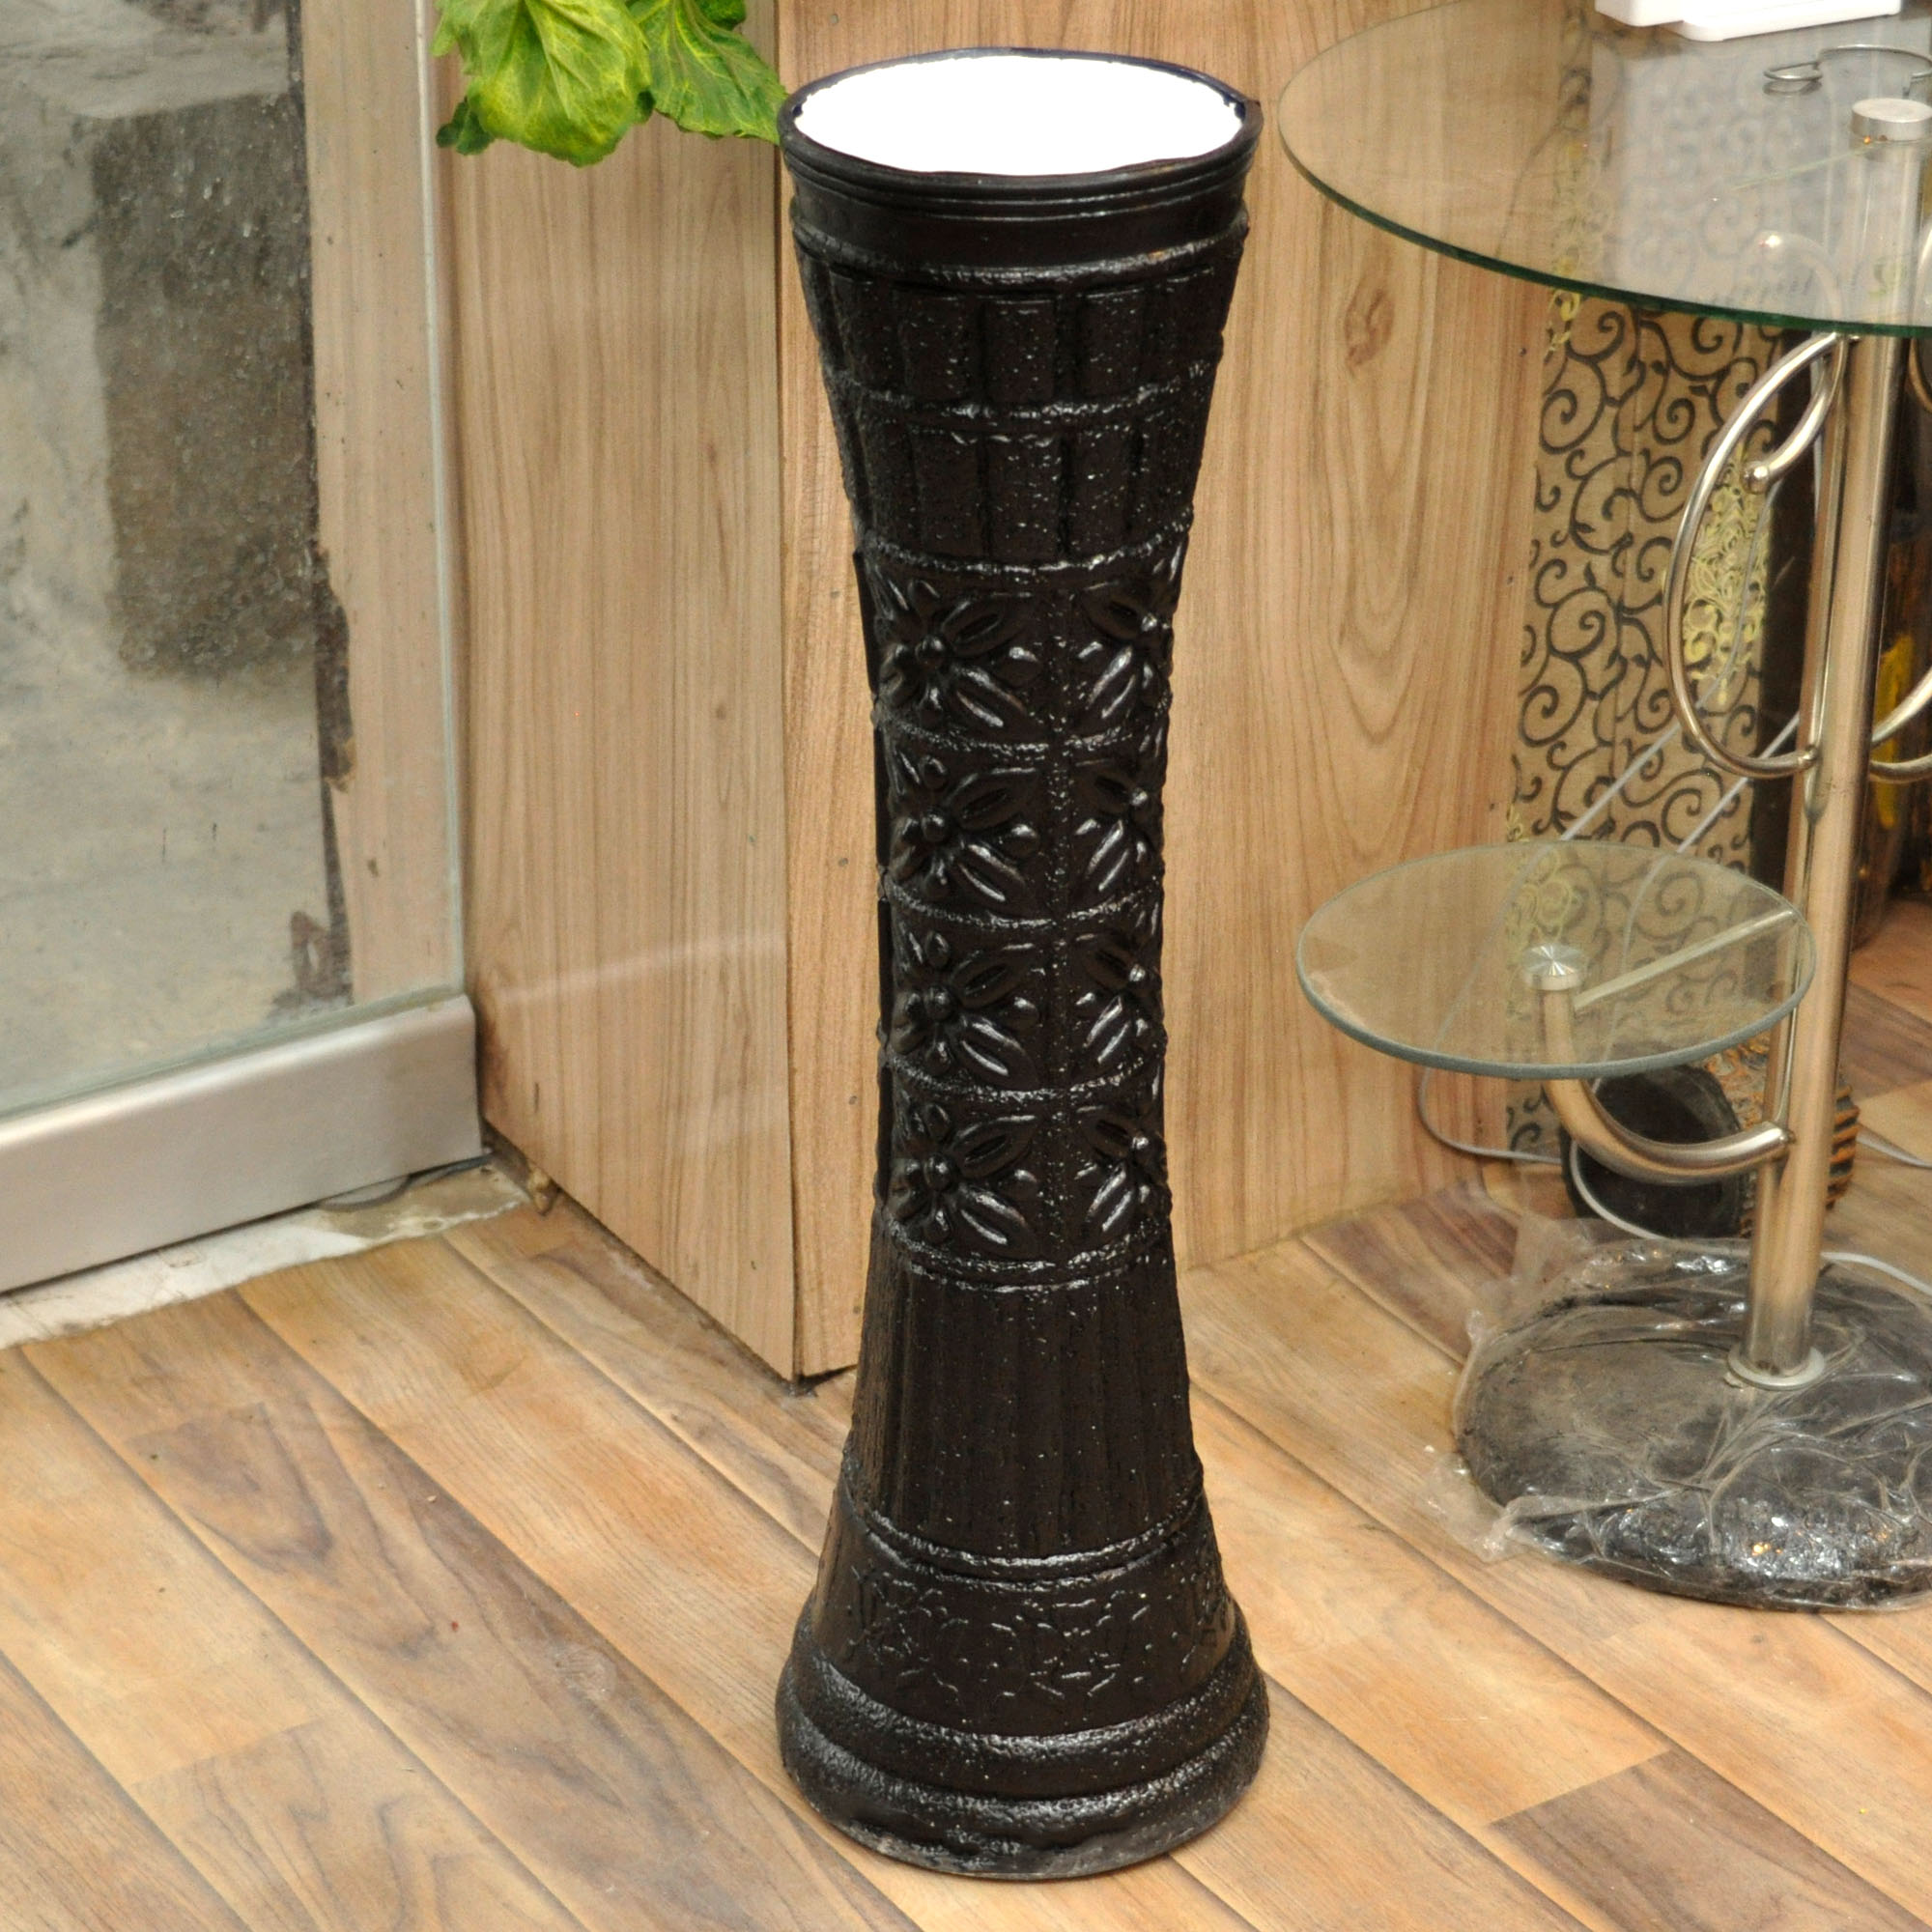 Plastic Flower Vase Floral for Artificial Flowers Home Decor 28 inches height